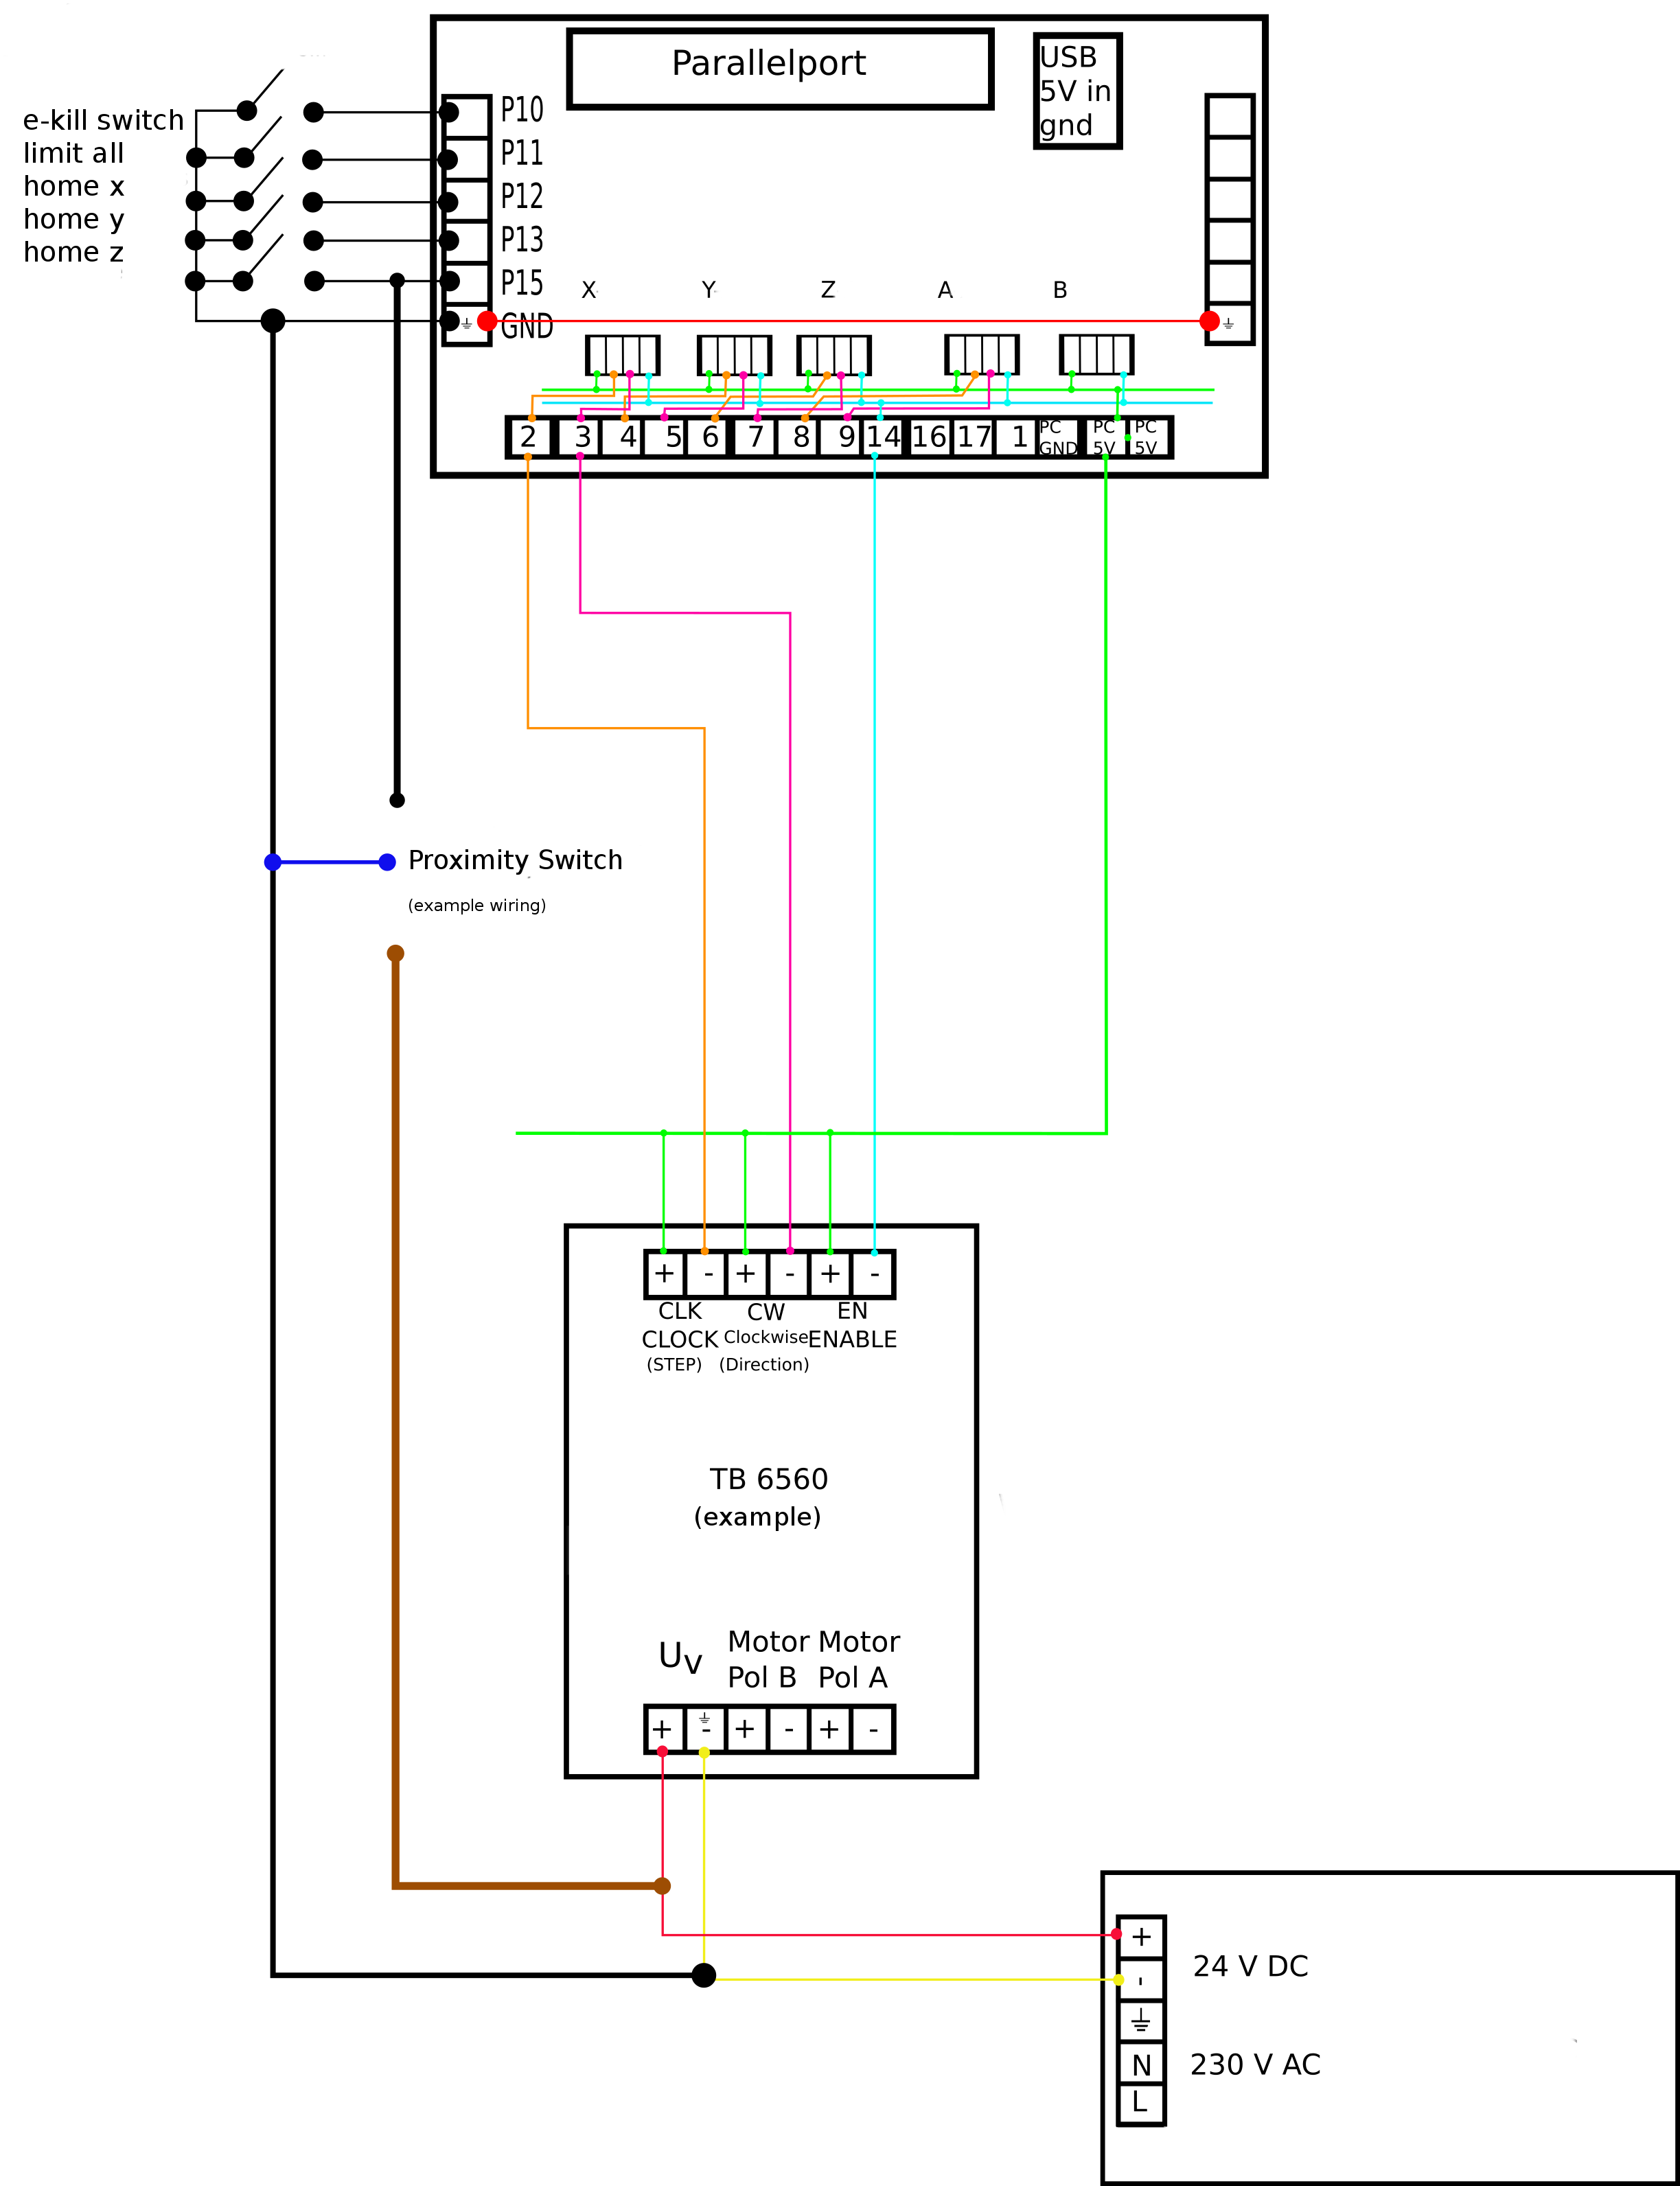 Ac Proximity Sensor Wiring Diagram Diagrams Together With 3 Wire Inductive Switch Pressure Pnp Dc